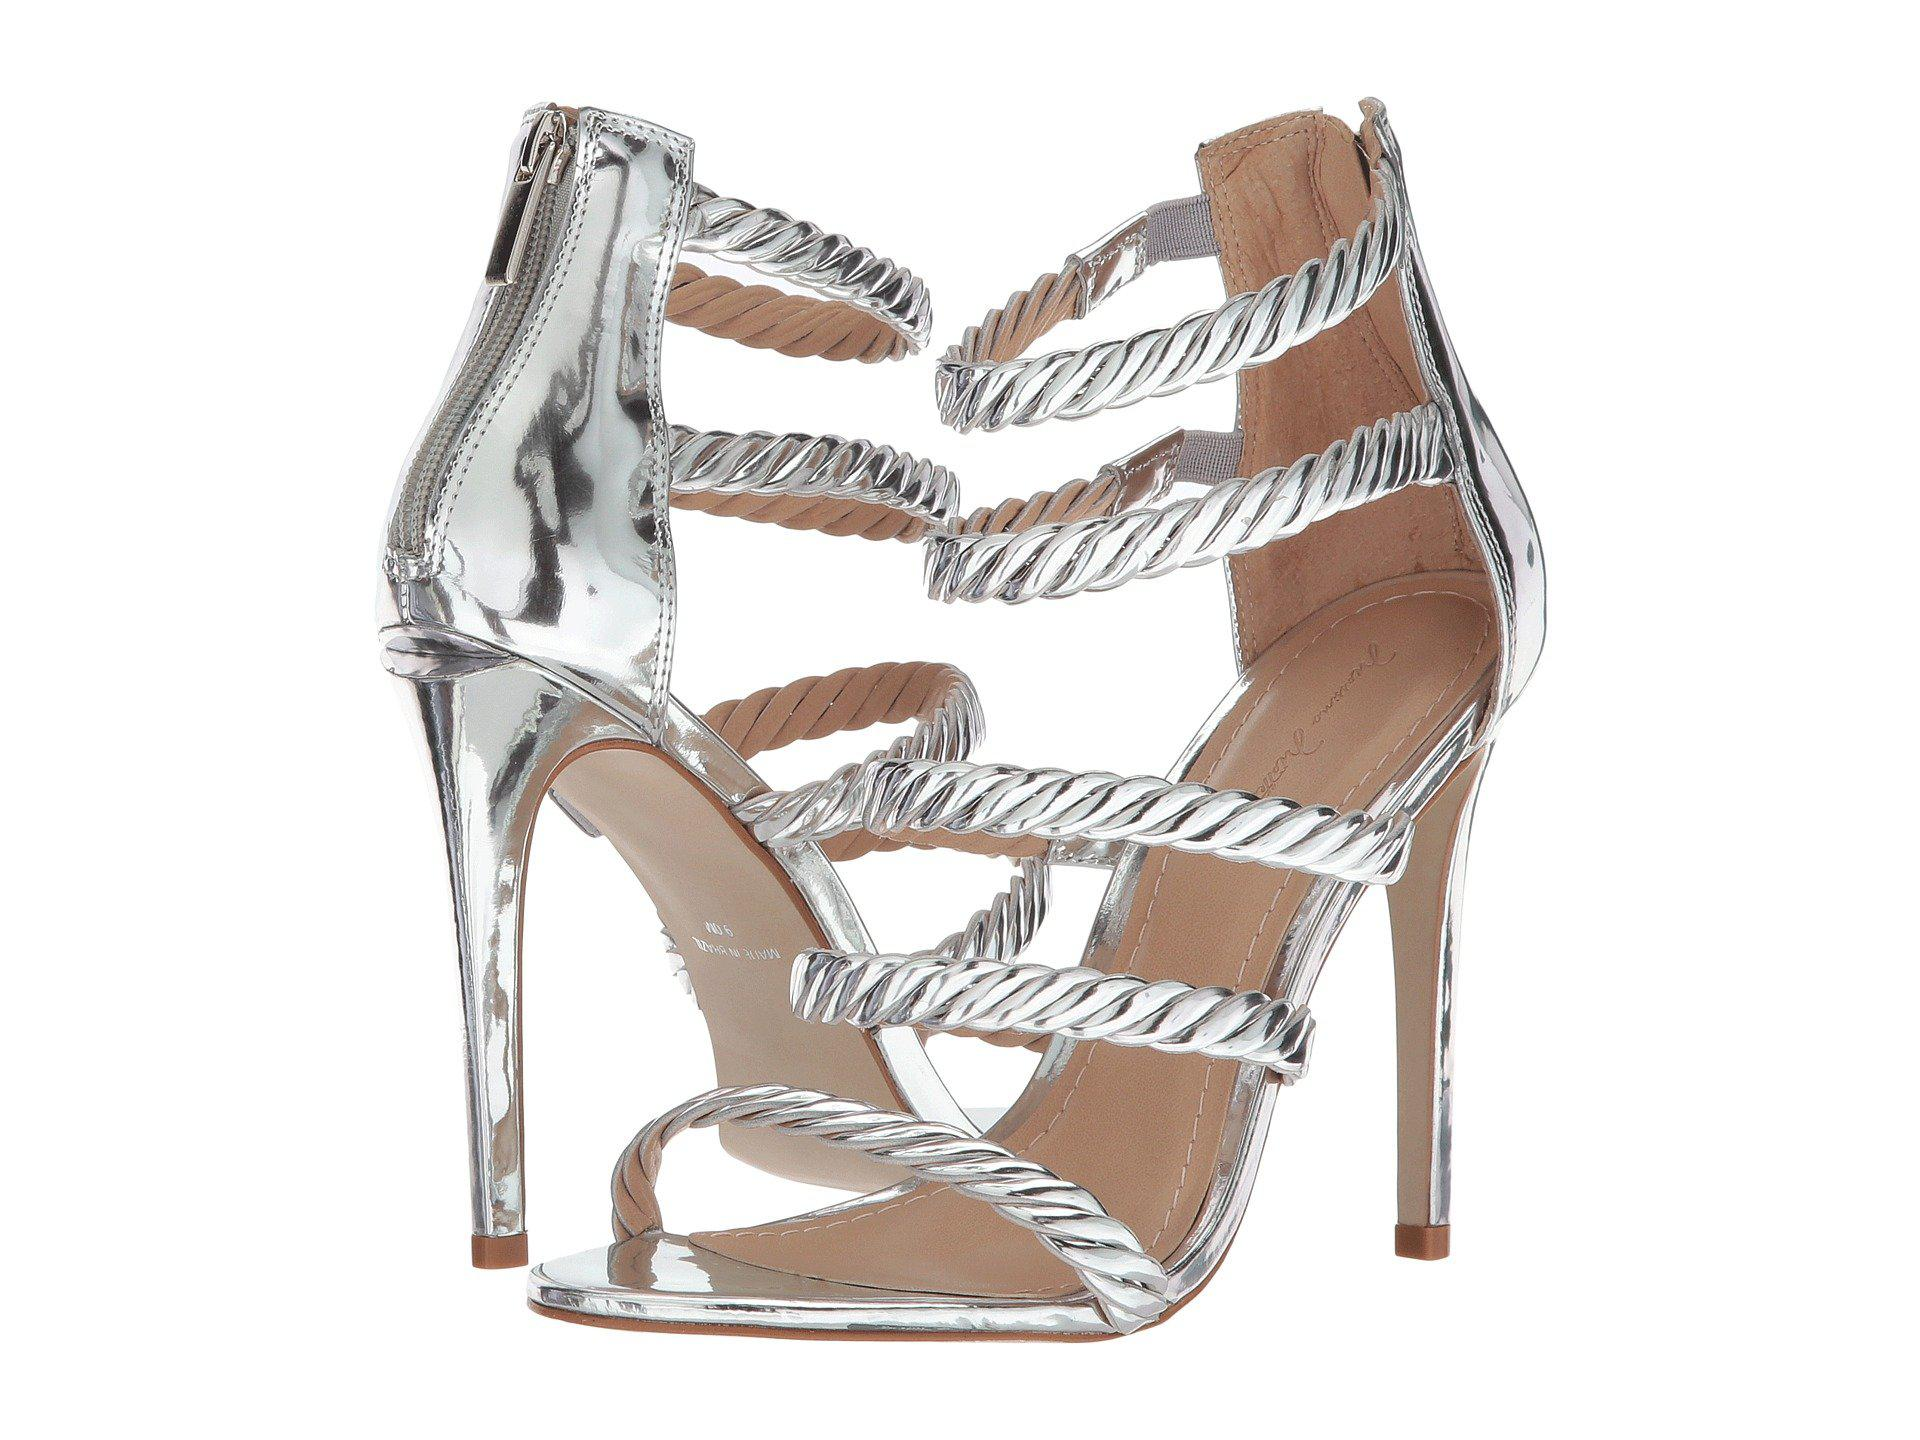 05304d6a82 Lyst - Massimo Matteo 5-strap Open Toe in Metallic - Save 45%